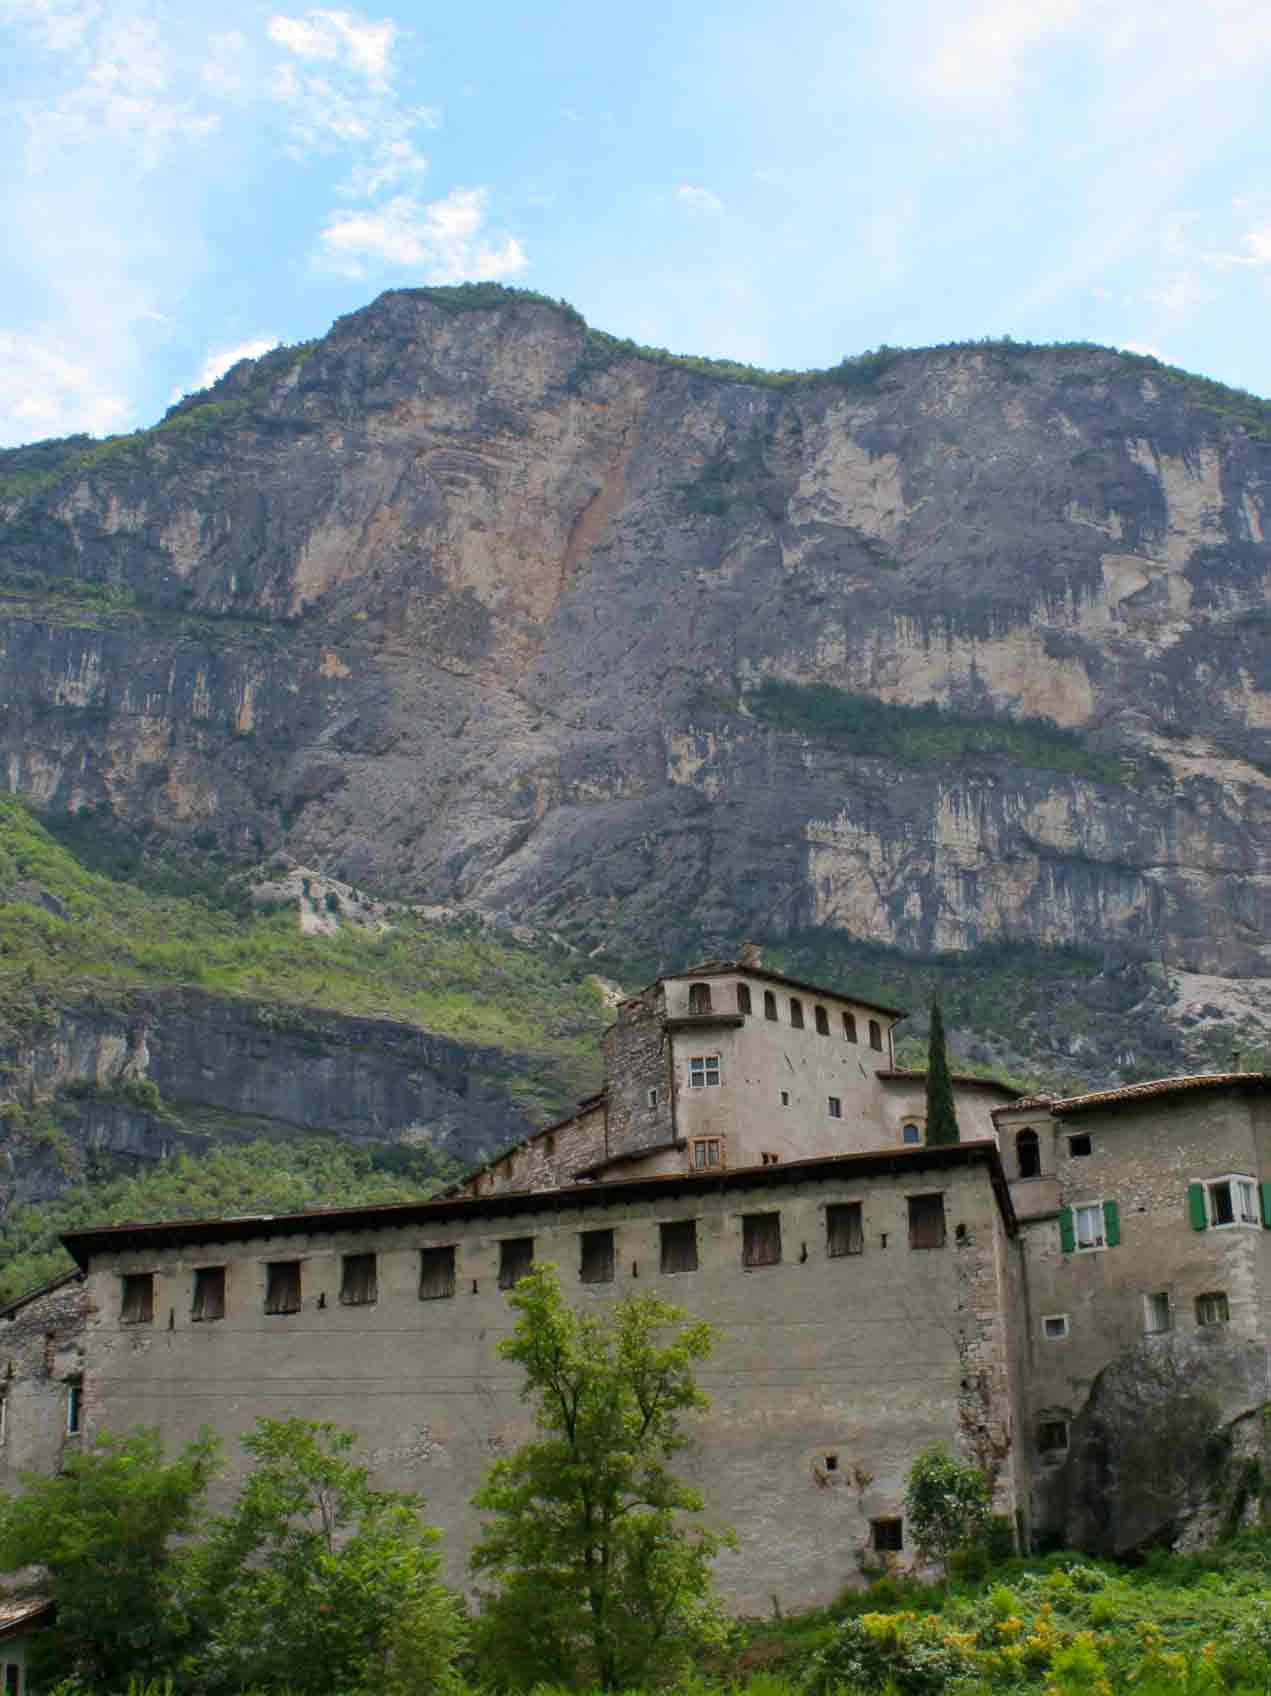 Castel Pietra and the historic Battle of Calliano